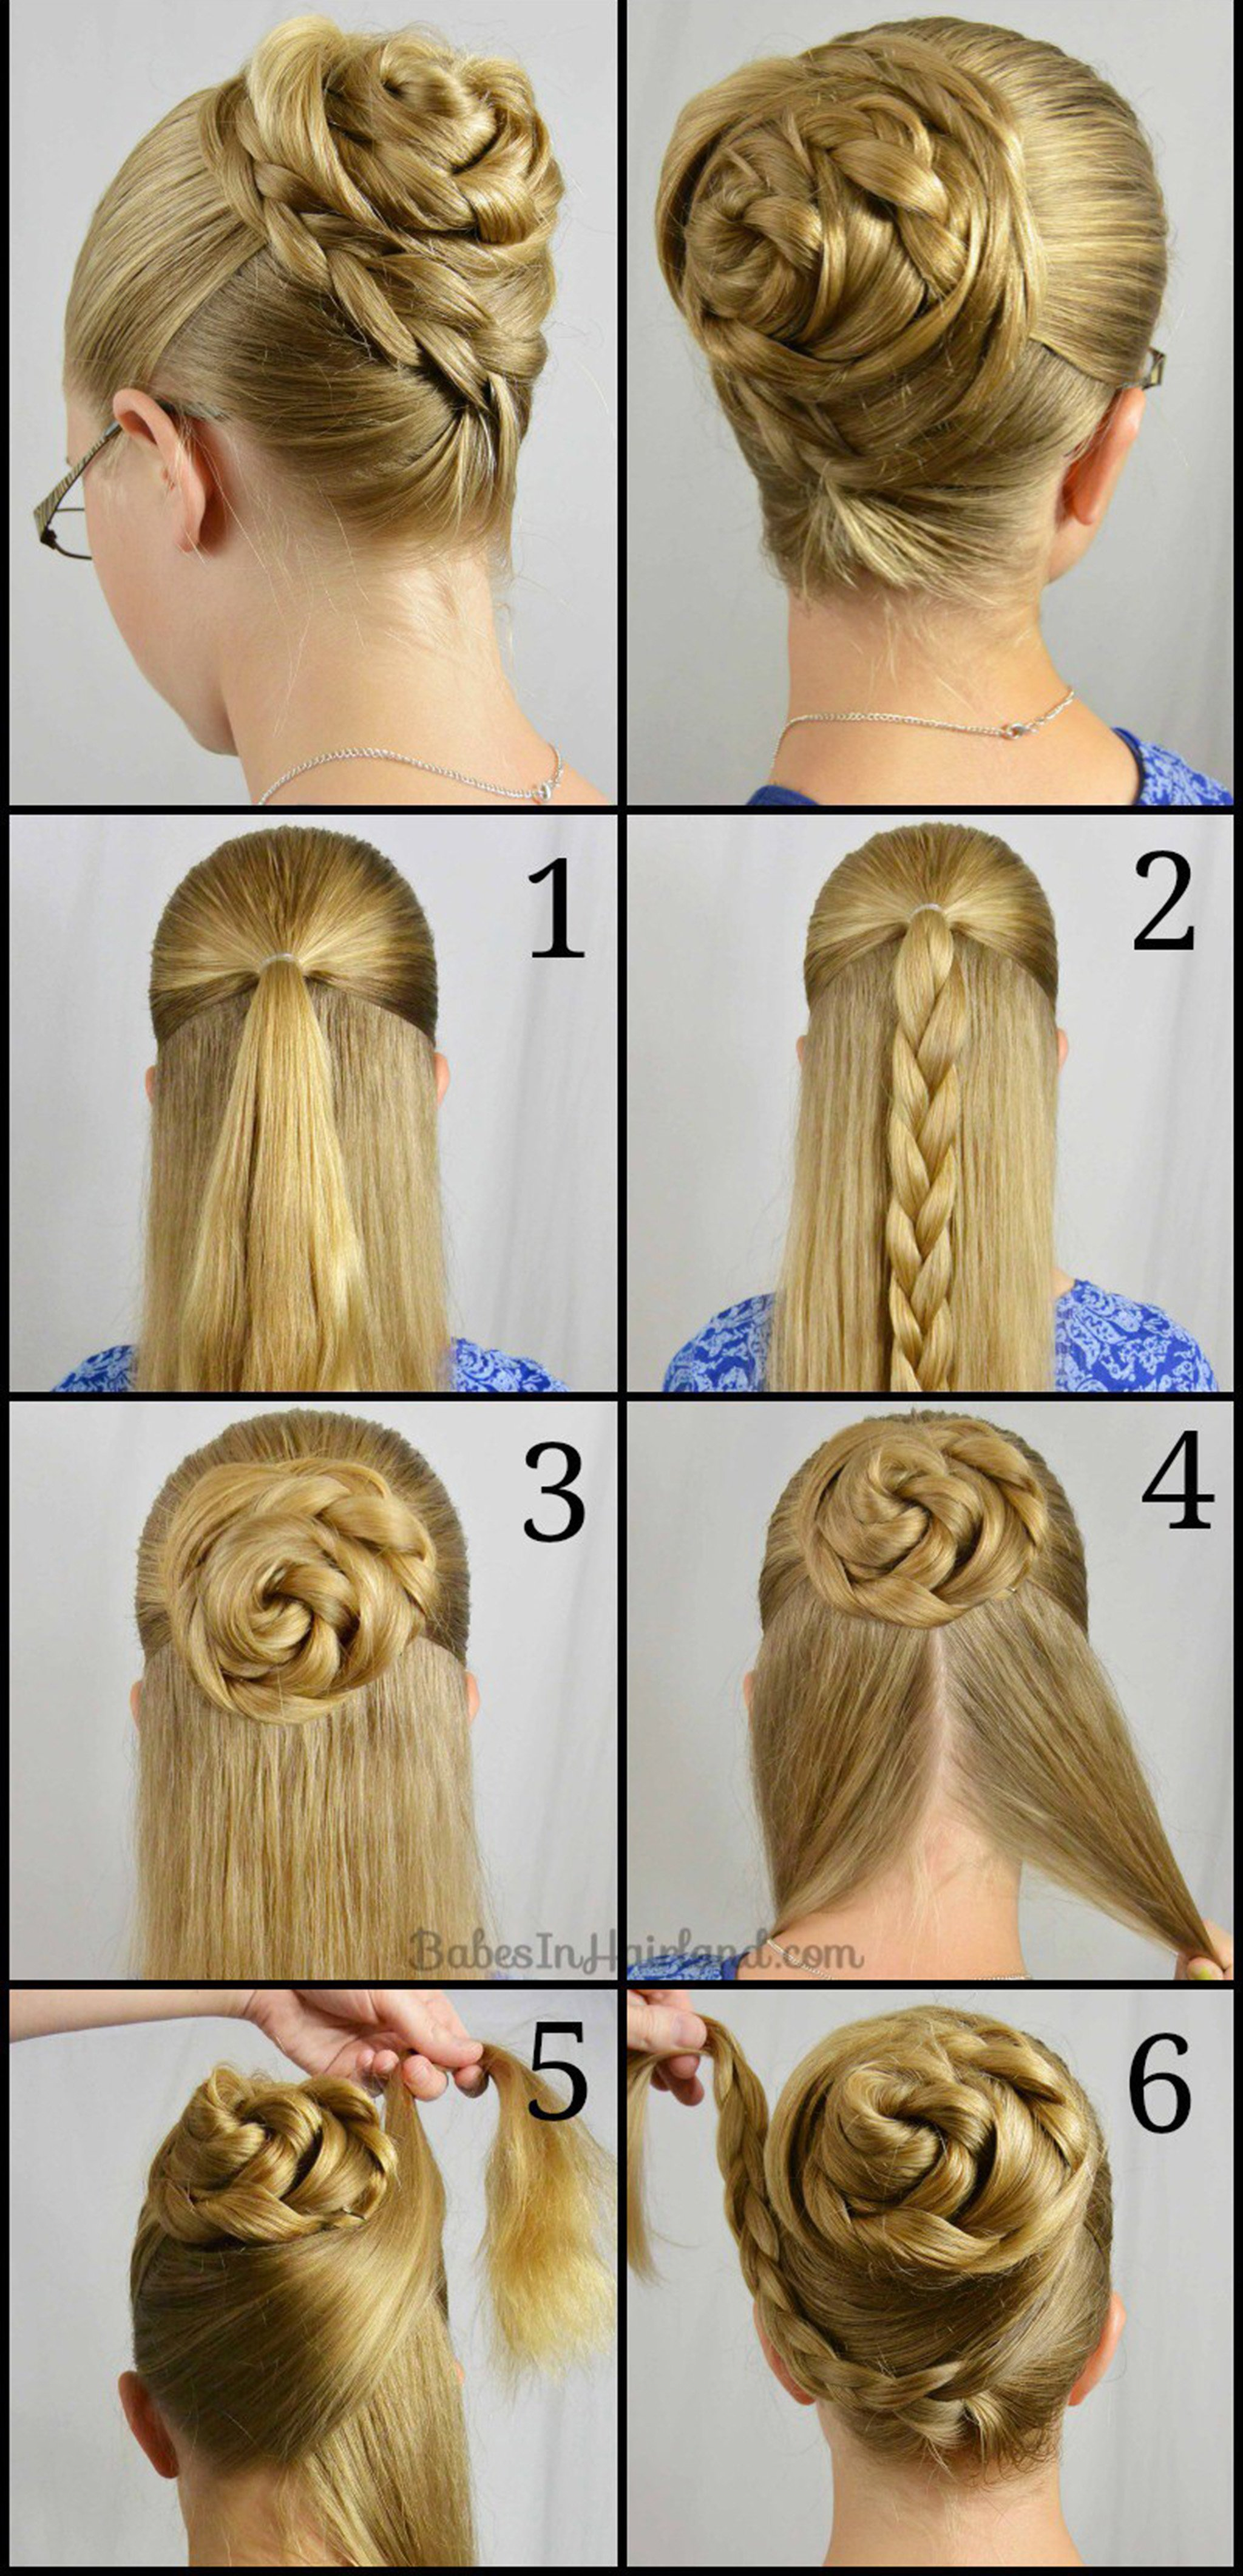 Free Top 10 Quick Easy Braided Hairstyles Step By Step Wallpaper